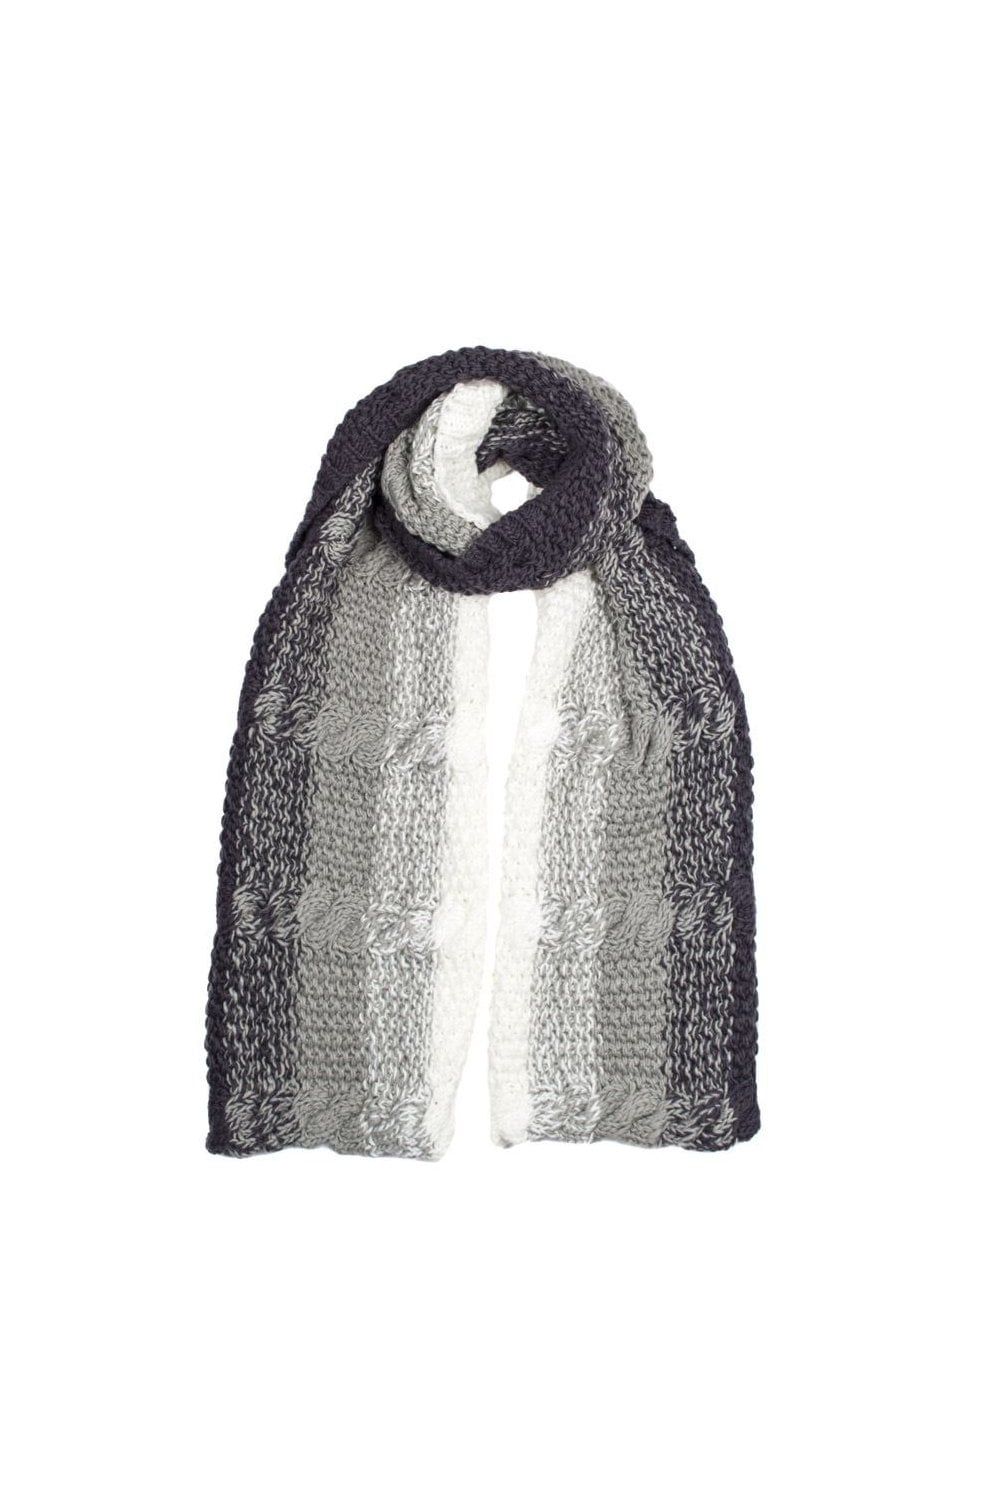 7548d3ed01922e Dents Womens Cable Knit Ombre Scarf - Charcoal - Accessories from ...